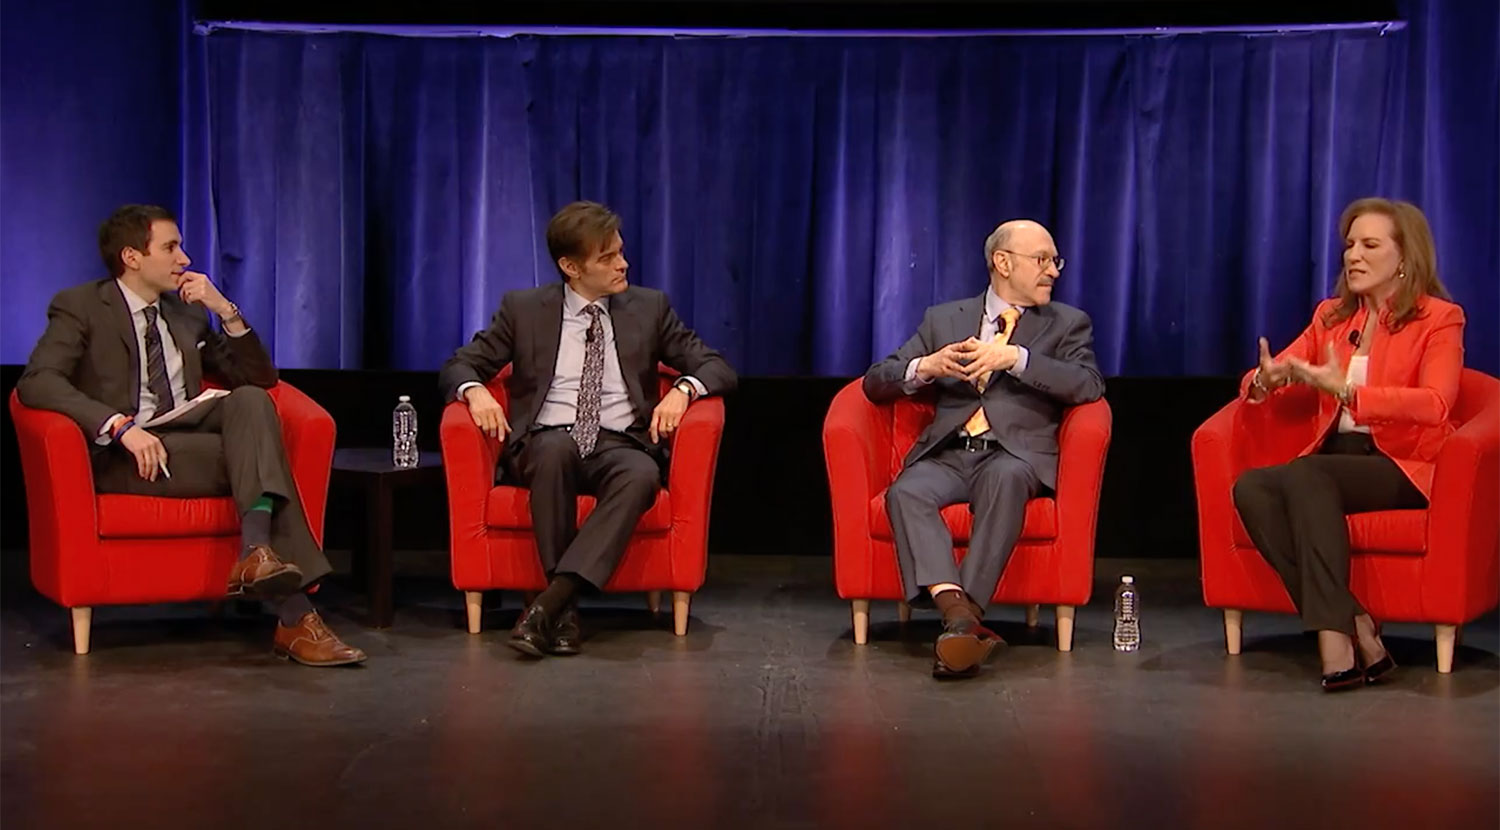 From left: Andrew Ross Sorkin, Dr. Mehmet Oz, Dr. Norman Rosenthal  and Dr. Pamela Peeke